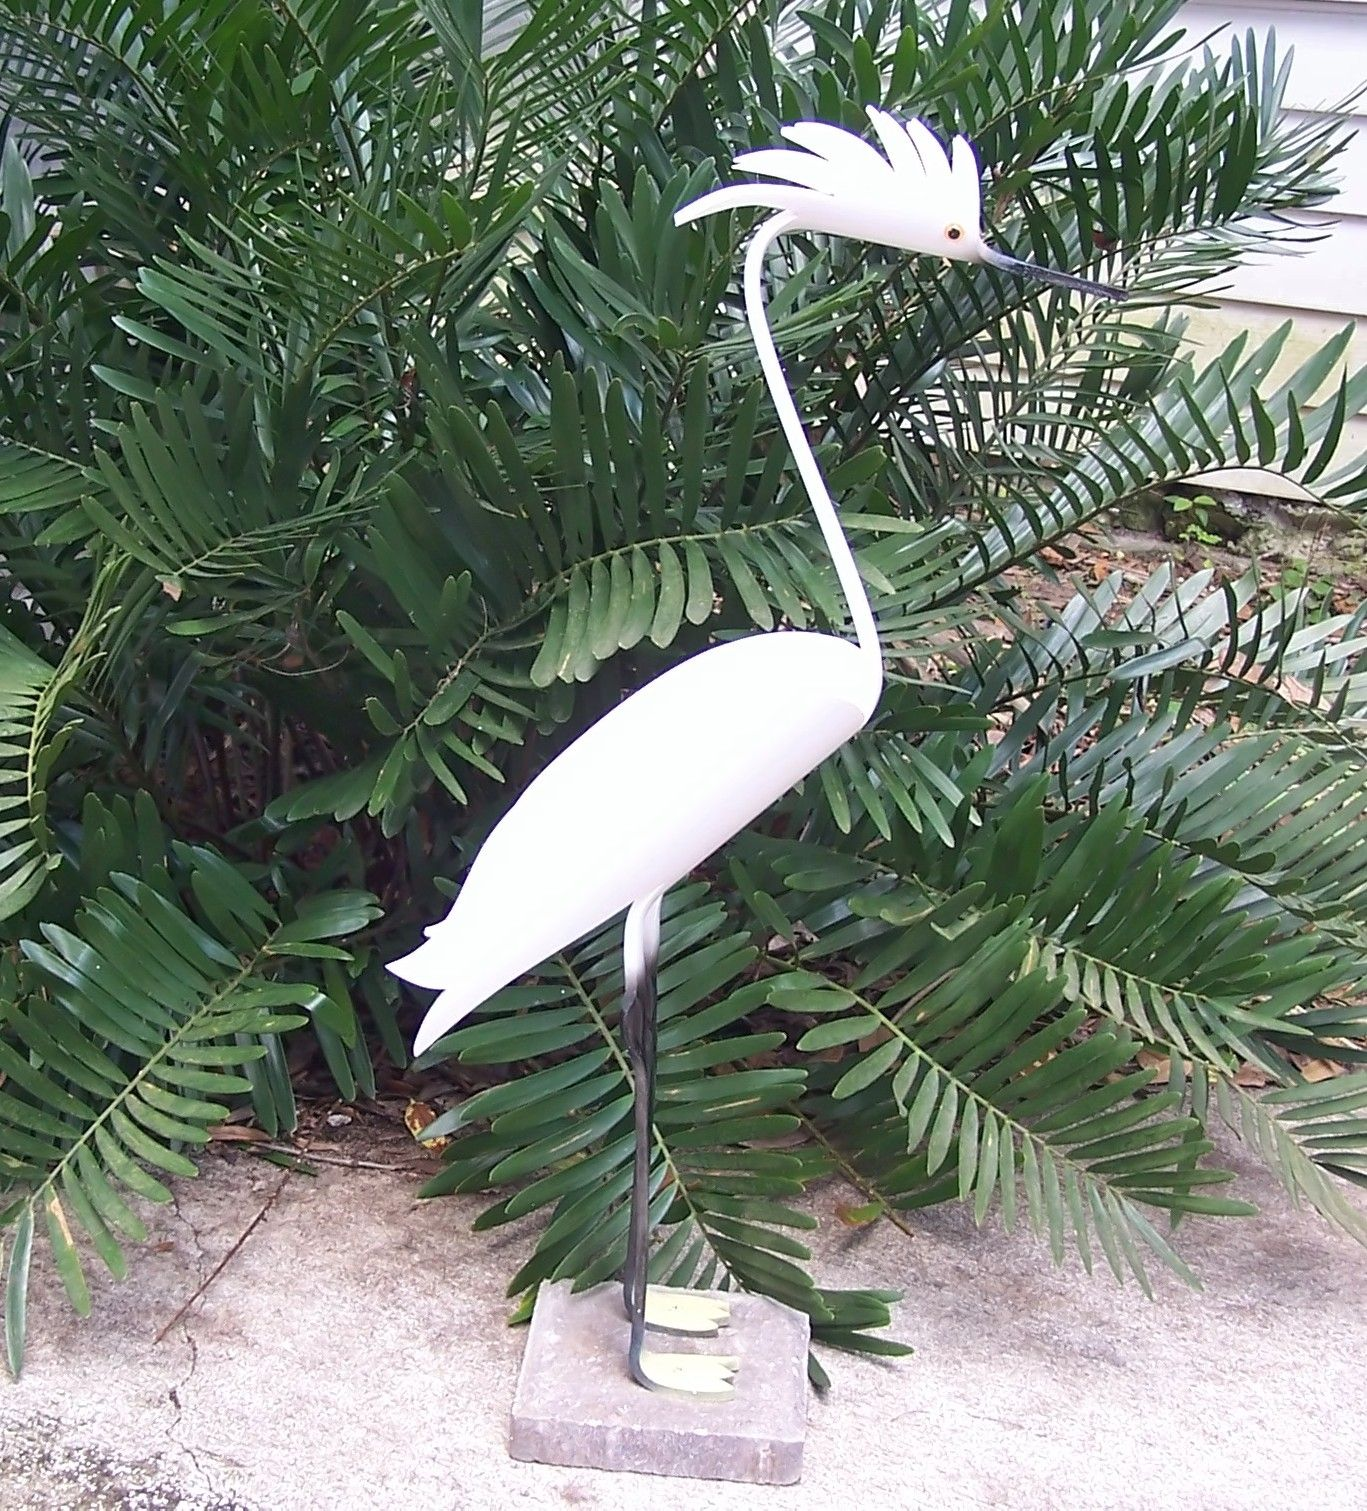 100 4009 jpg 1 367 1 511 pixels crafts pinterest for How to make pvc pipe birds